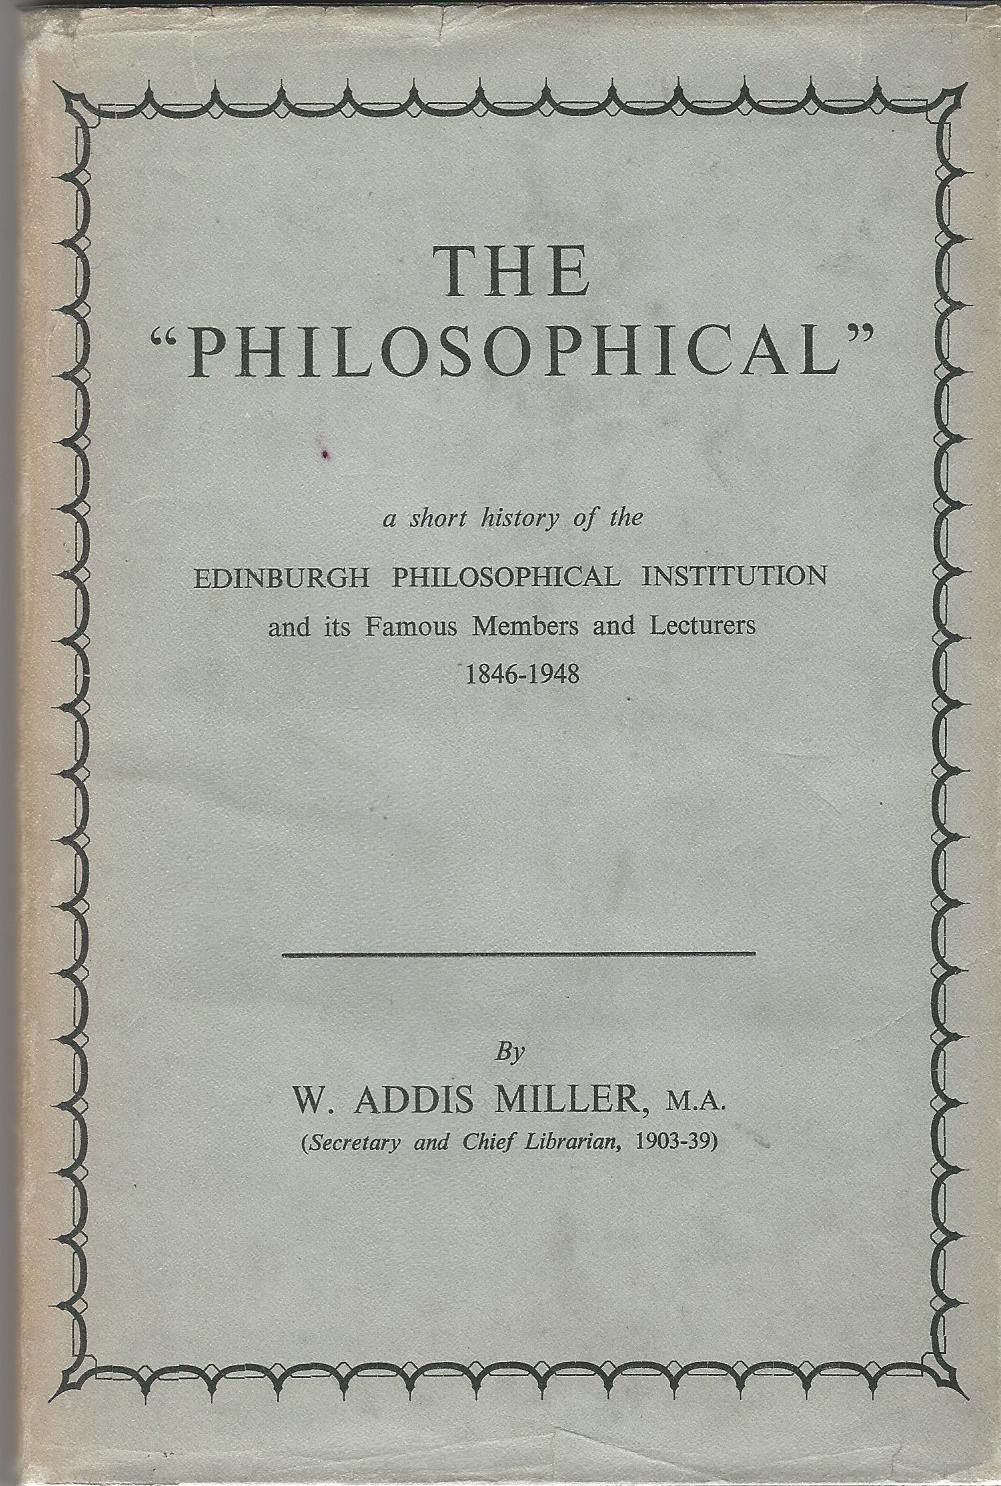 Image for The Philosophical: A Short History of the Edinburgh Philosophical Institution and its Famous Members and Lecturers 1846-1948